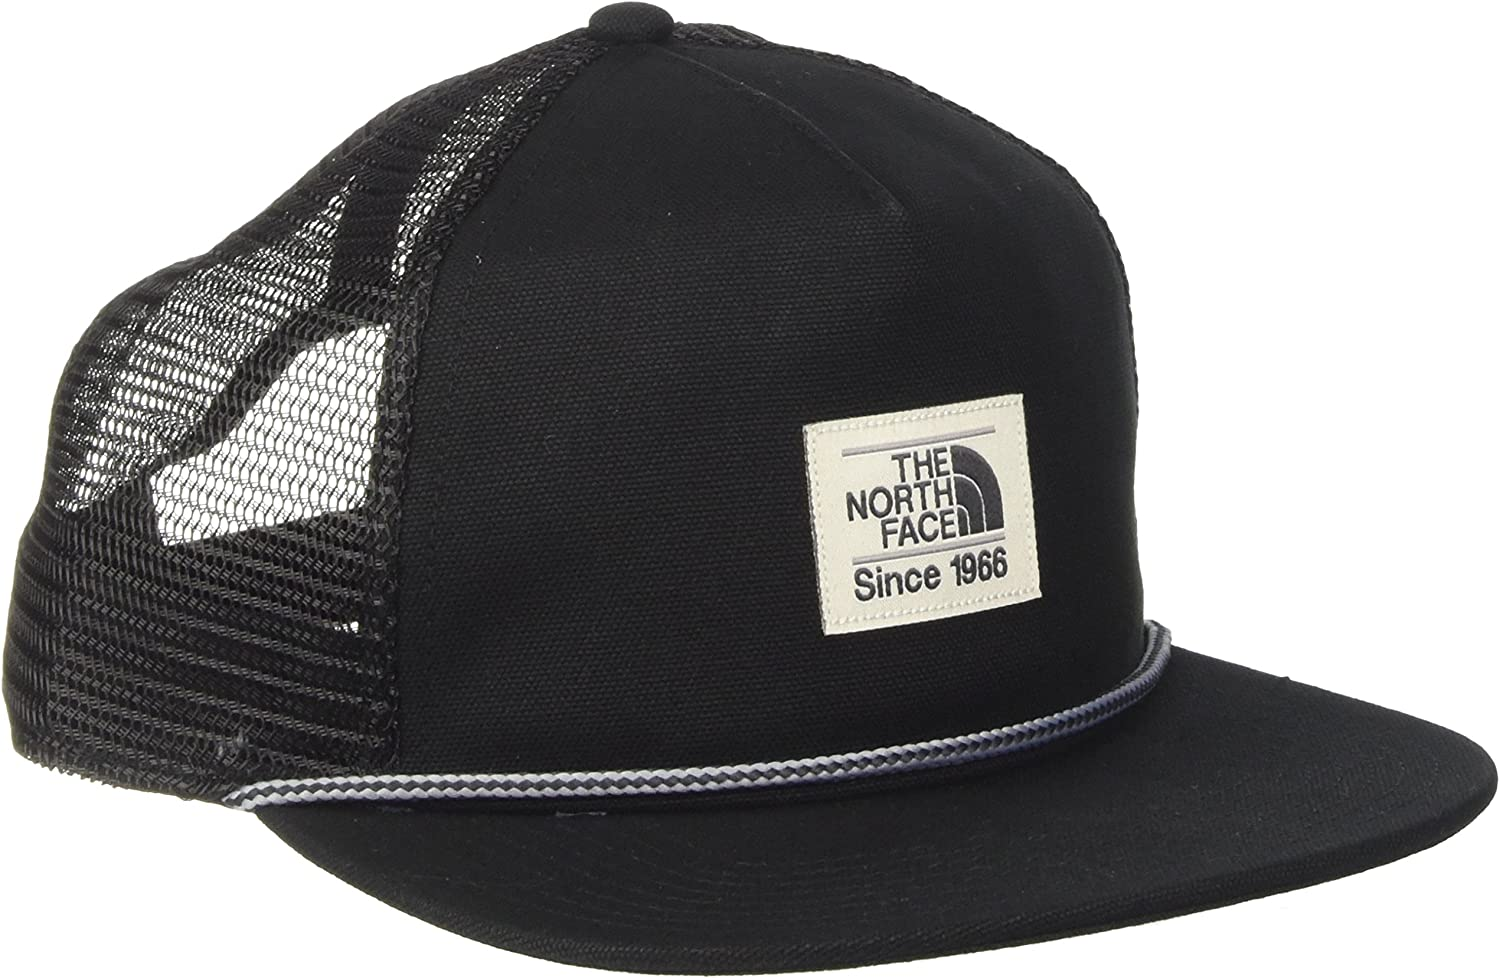 The North Face Muddier Trucker Gorra, Hombre, Negro, Talla única ...